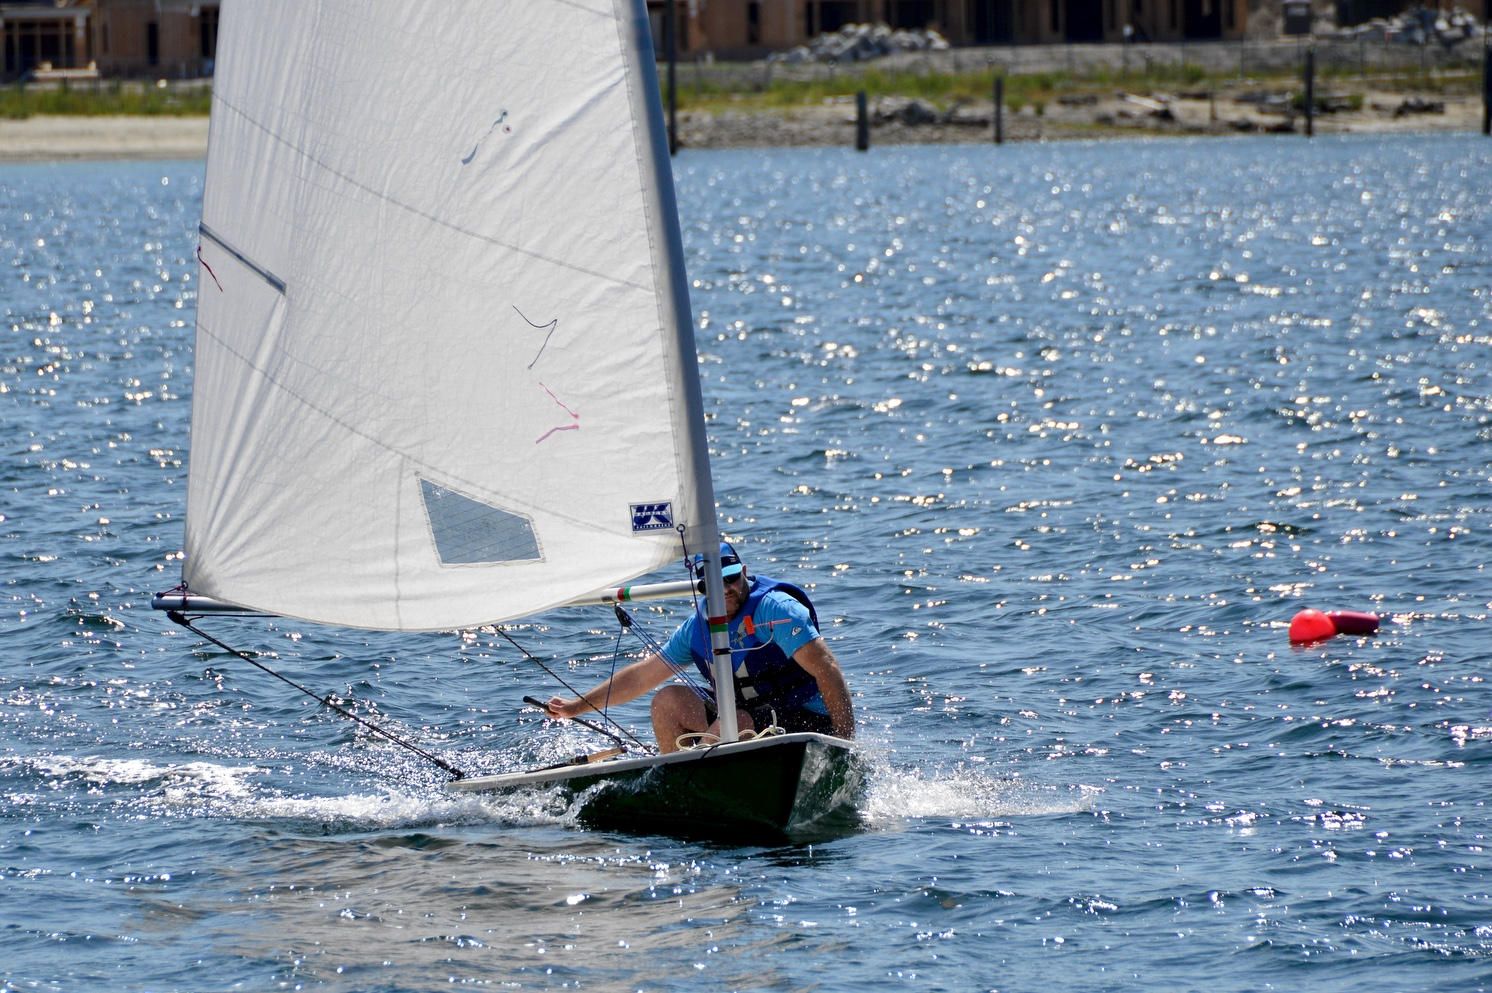 Ken Olson racing int he 6th Annual Poise Cove Regatta July 16th, 2017